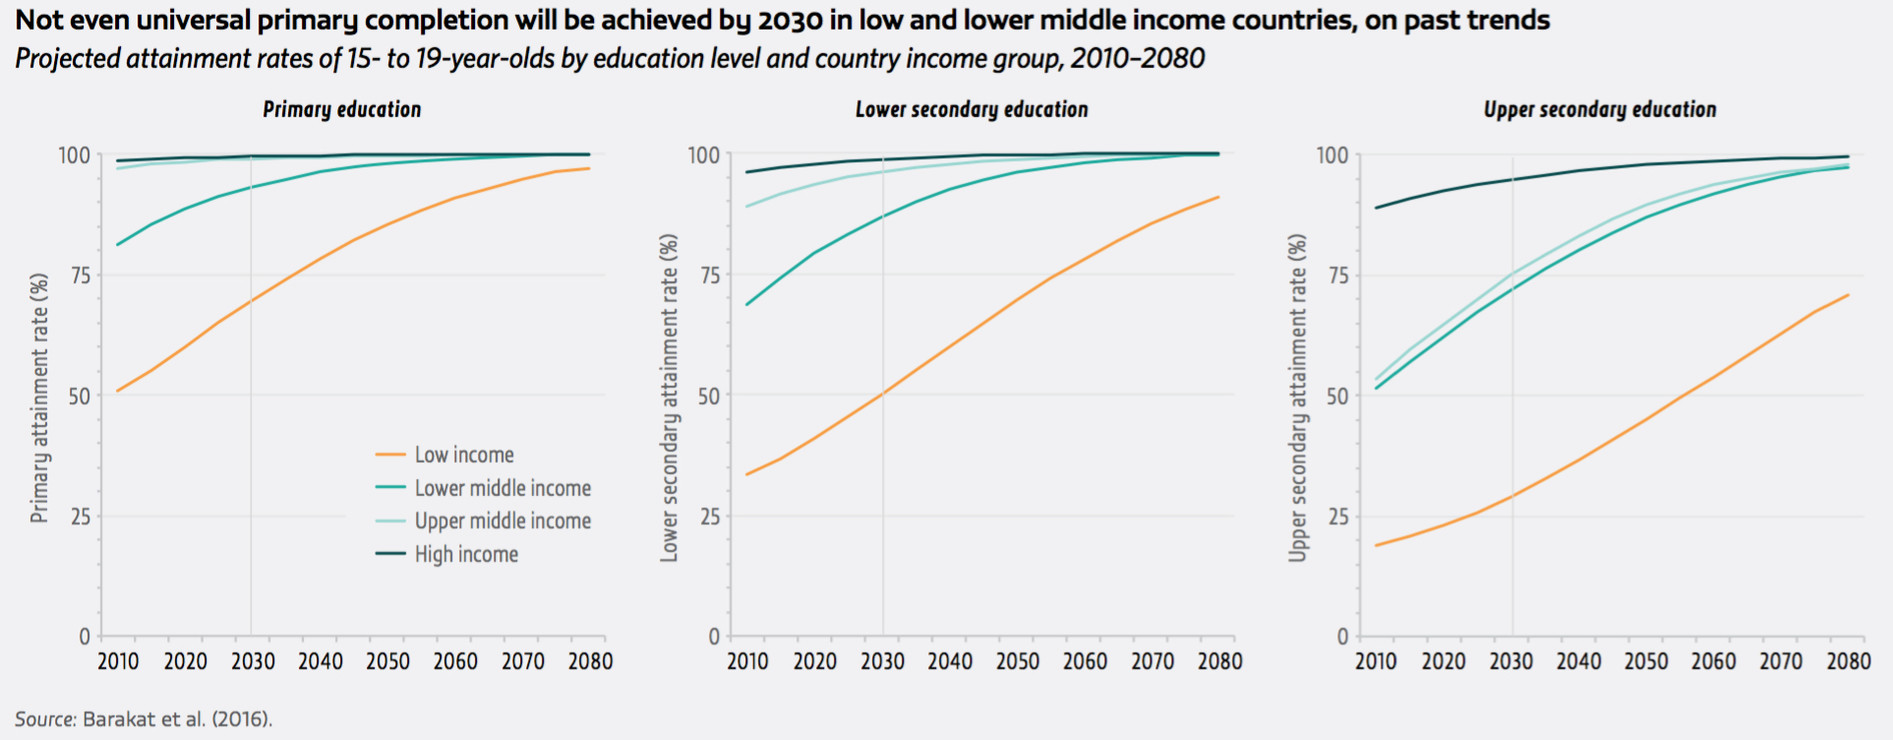 Not even universal primary completion will be achieved by 2030 in low and lower middle income countries, on past trends.